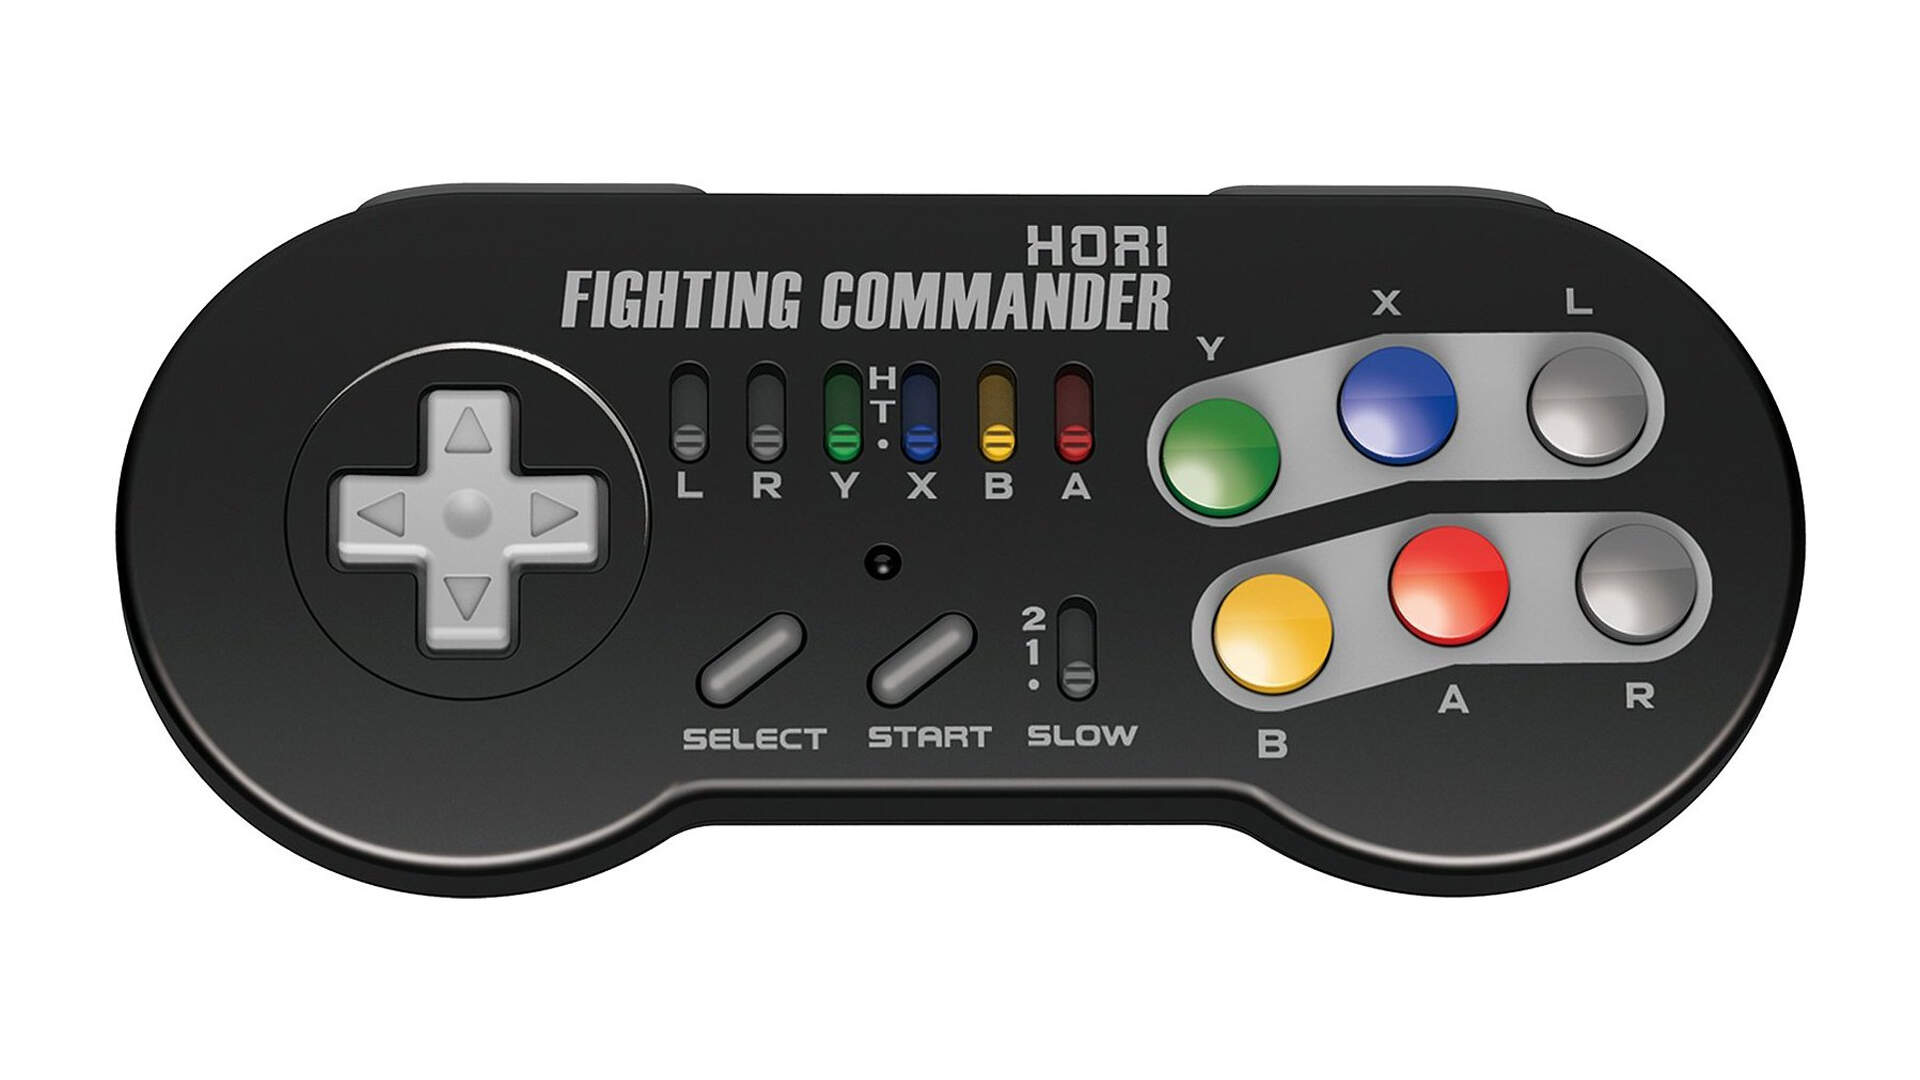 Hori's Fighting Commander Controller Is out This Week, Available to Order Now